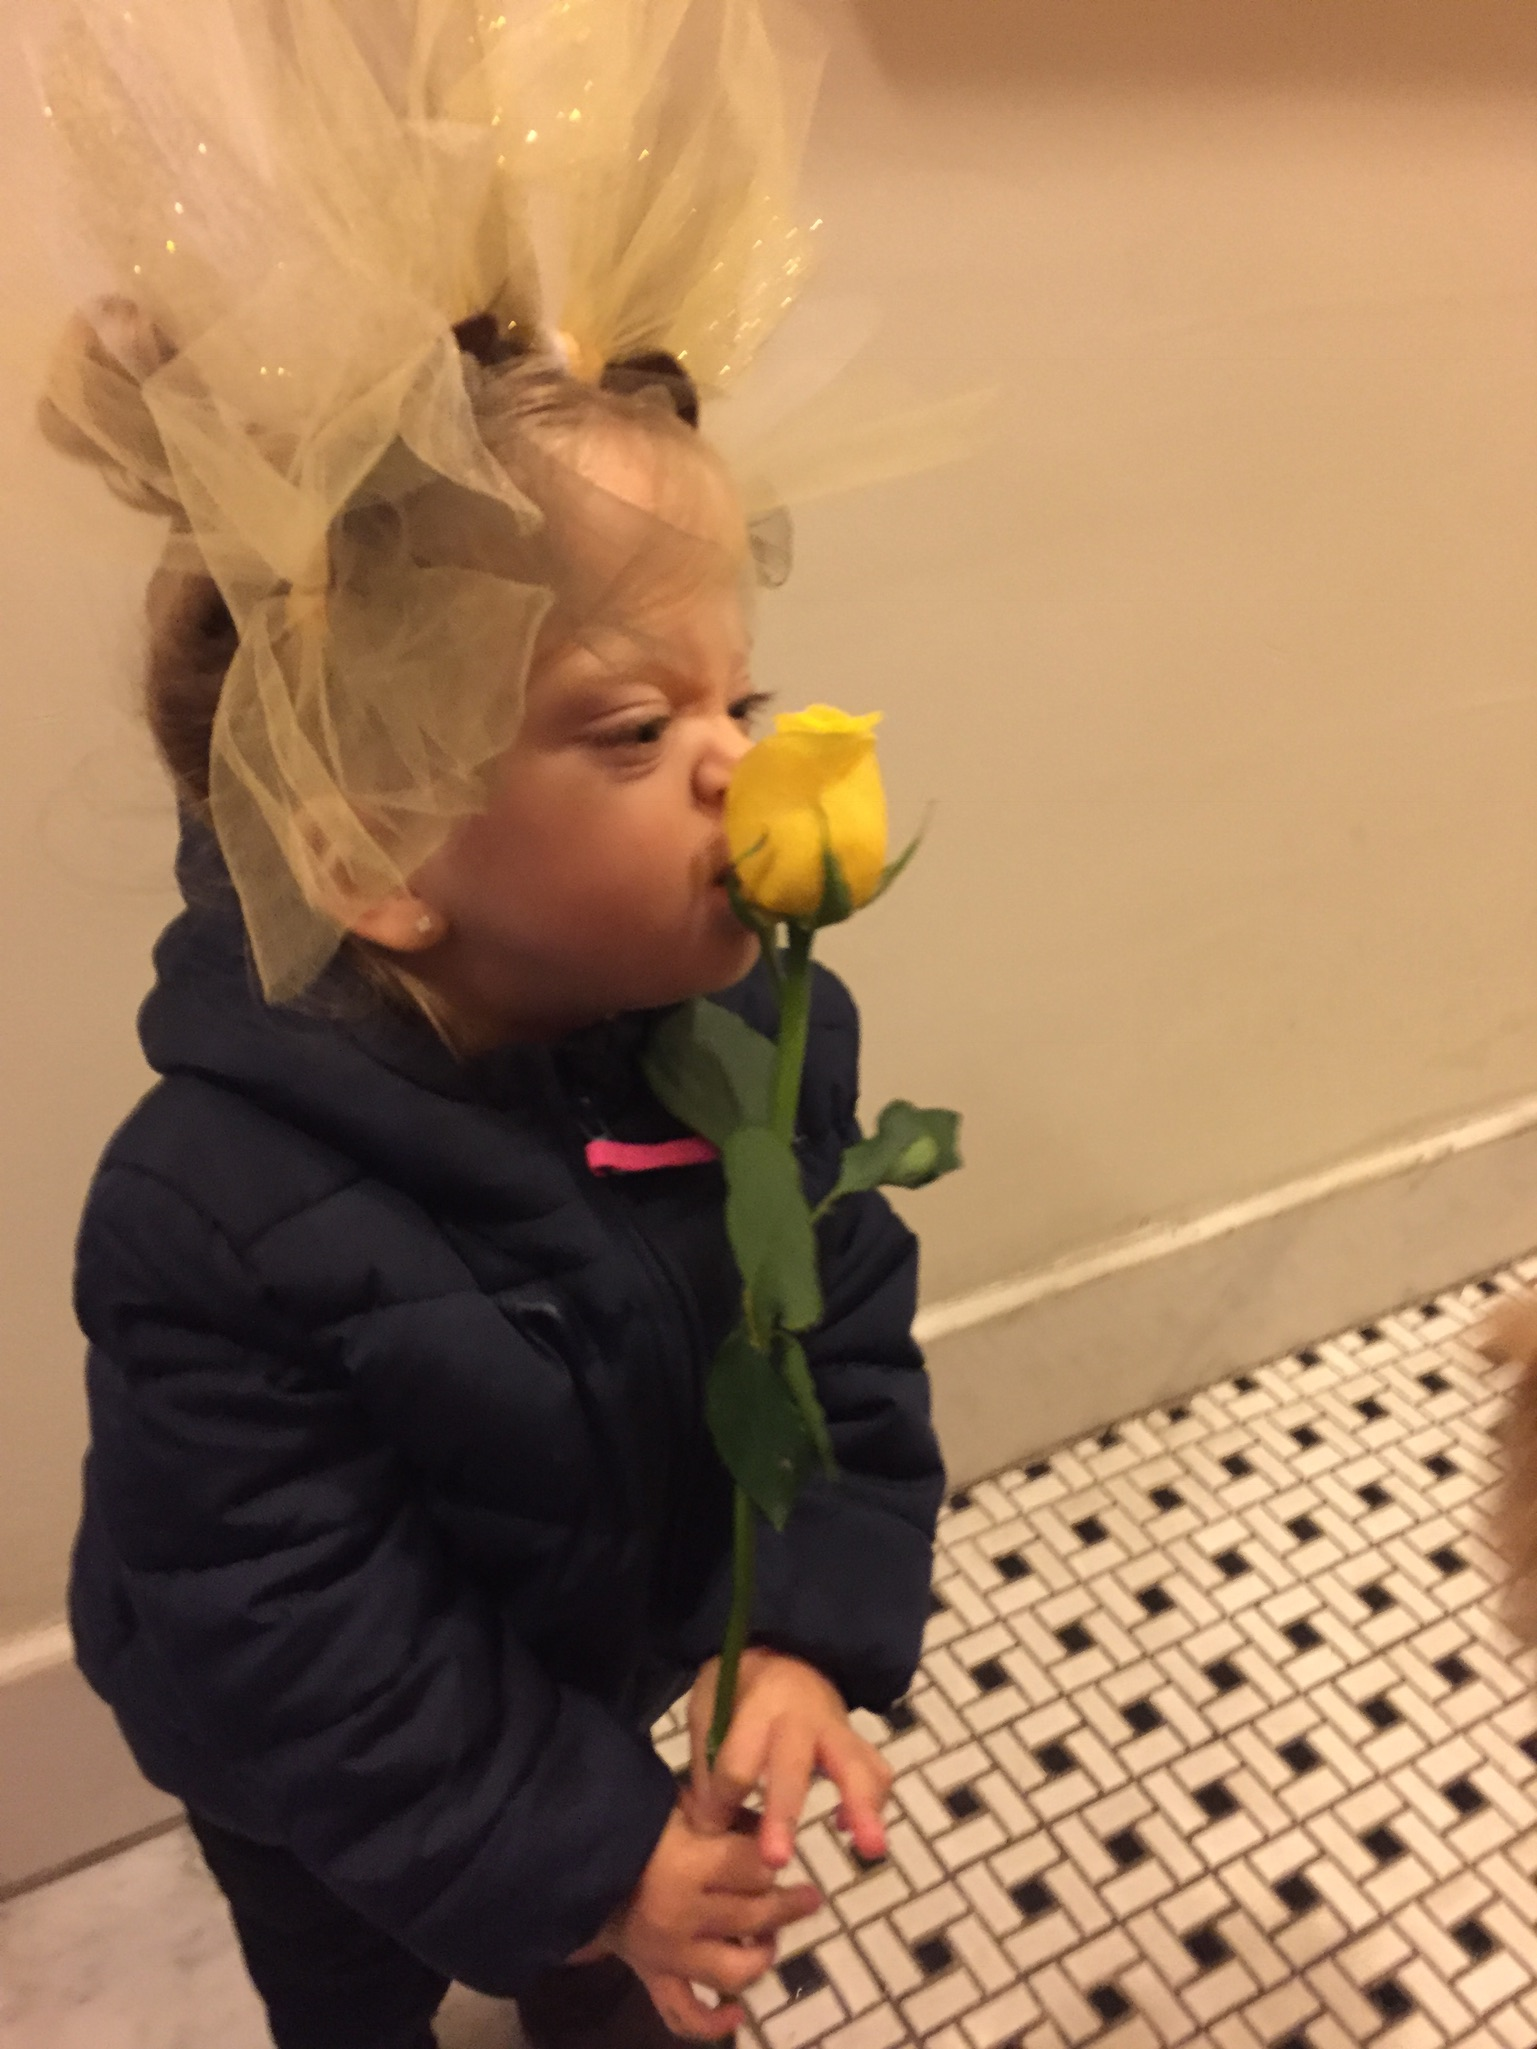 We also walked around to some of the local stores on our street that we regularly frequent to say Happy Halloween. Since Lucie isn't eating candy just yet, our bodega shop gave Lucie her first rose which was so sweet.